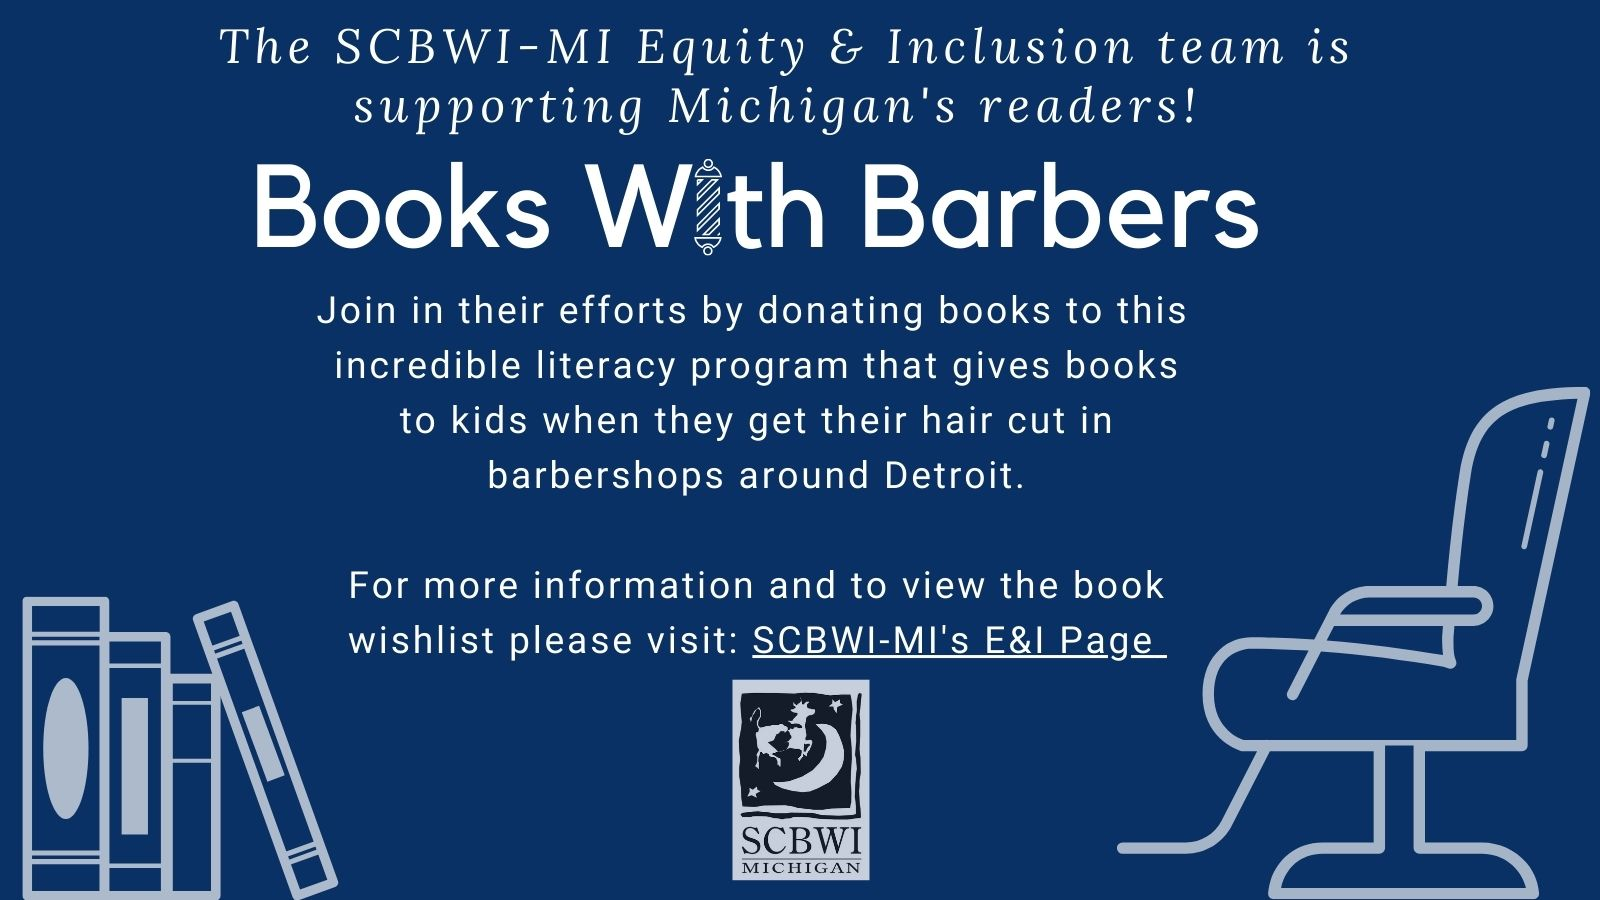 The SCBWI-MI Equity & Inclusion Team is highlighting literacy efforts that support Michigan readers.This year's initiative isBooks With Barbers, a program that provides books for young patrons of barber shops in Detroit. The initiative was discovered by SCBWI-MI's Debbie Gonzales who met Michigan literacy experts and coordinators of the Books With Barbers program, Ashelin Currie and Jerry Jones at a Michigan Reading Association meeting and we are so happy that she connected us! The Books With Barbers mission is to use the popular community hub to distribute books featuring characters of color that reflectthe readers' experiences, culture and community.Let's help readers enjoy a great book along with a new haircut. You can support this book drive by selecting a book from theBook Wish Listand sending it to Books For Barbers from November 15 – December 15. Below is the information for the Books With Barbers donation process: To purchase a book to be donated to Books With Barbers (BWB), please follow these instructions: 1) Visit the Source Booksellers website atwww.sourcebooksellersonline.comand select the book from the Children's Book section 2) On the checkout page, find the Comments Section and write BOOKS WITH BARBERS. 3) Make your payment. 4) Your purchase will be sent to the BWB Coordinator. (If the book is not listed, or if you have challenges making the purchase, simply call the bookstore at(313) 832-1155and your order will be taken over the phone.) If you would like to purchase a book from Amazon or from another bookstore, please have the book sent directly to the BWB Coordinator: Ms. Jerry Jones 1 Lafayette Plaisance Street Apt. 1811 Detroit, Michigan 48207  Find out how you can join the SCBWI-MI Equity & Inclusion Committee!